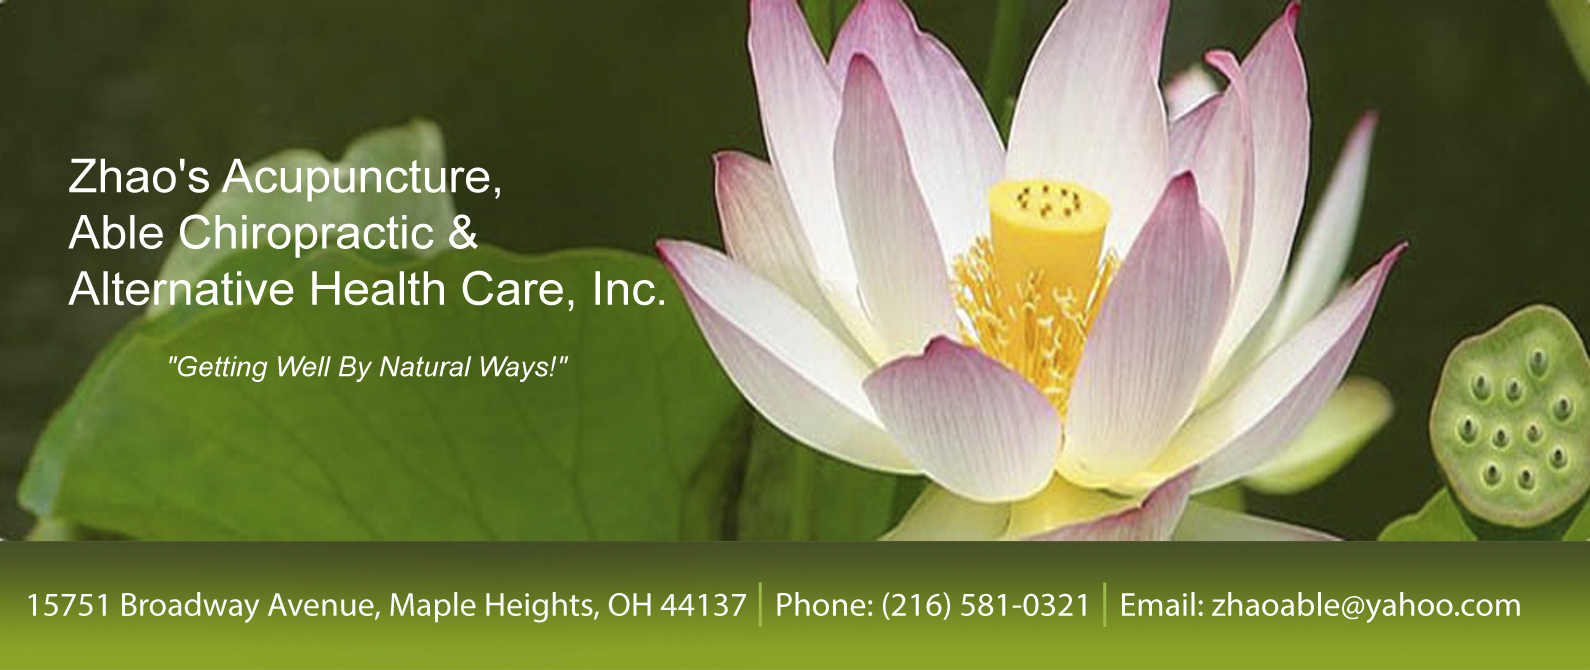 Zhao S Acupuncture Able Chiropractic Alternative Health Care Chiropractor In Maple Heights And The Greater North East Cleveland Oh Usa Home